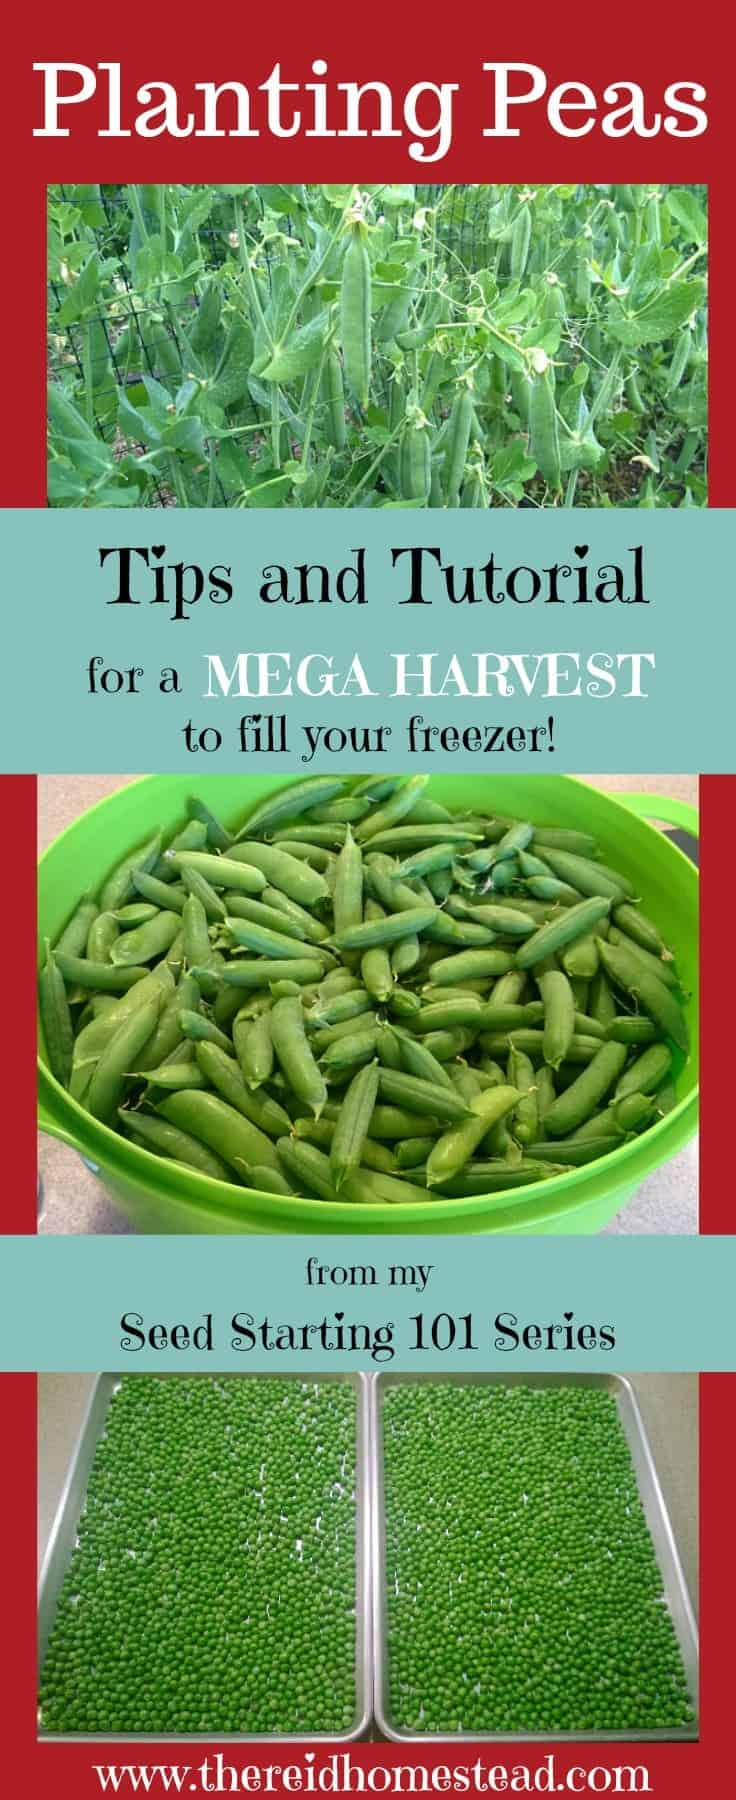 Planting Peas - Part of my Seed Starting 101 Series. Follow along as I share my tips and tricks on planting peas for a successful mega harvest! The Reid Homestead